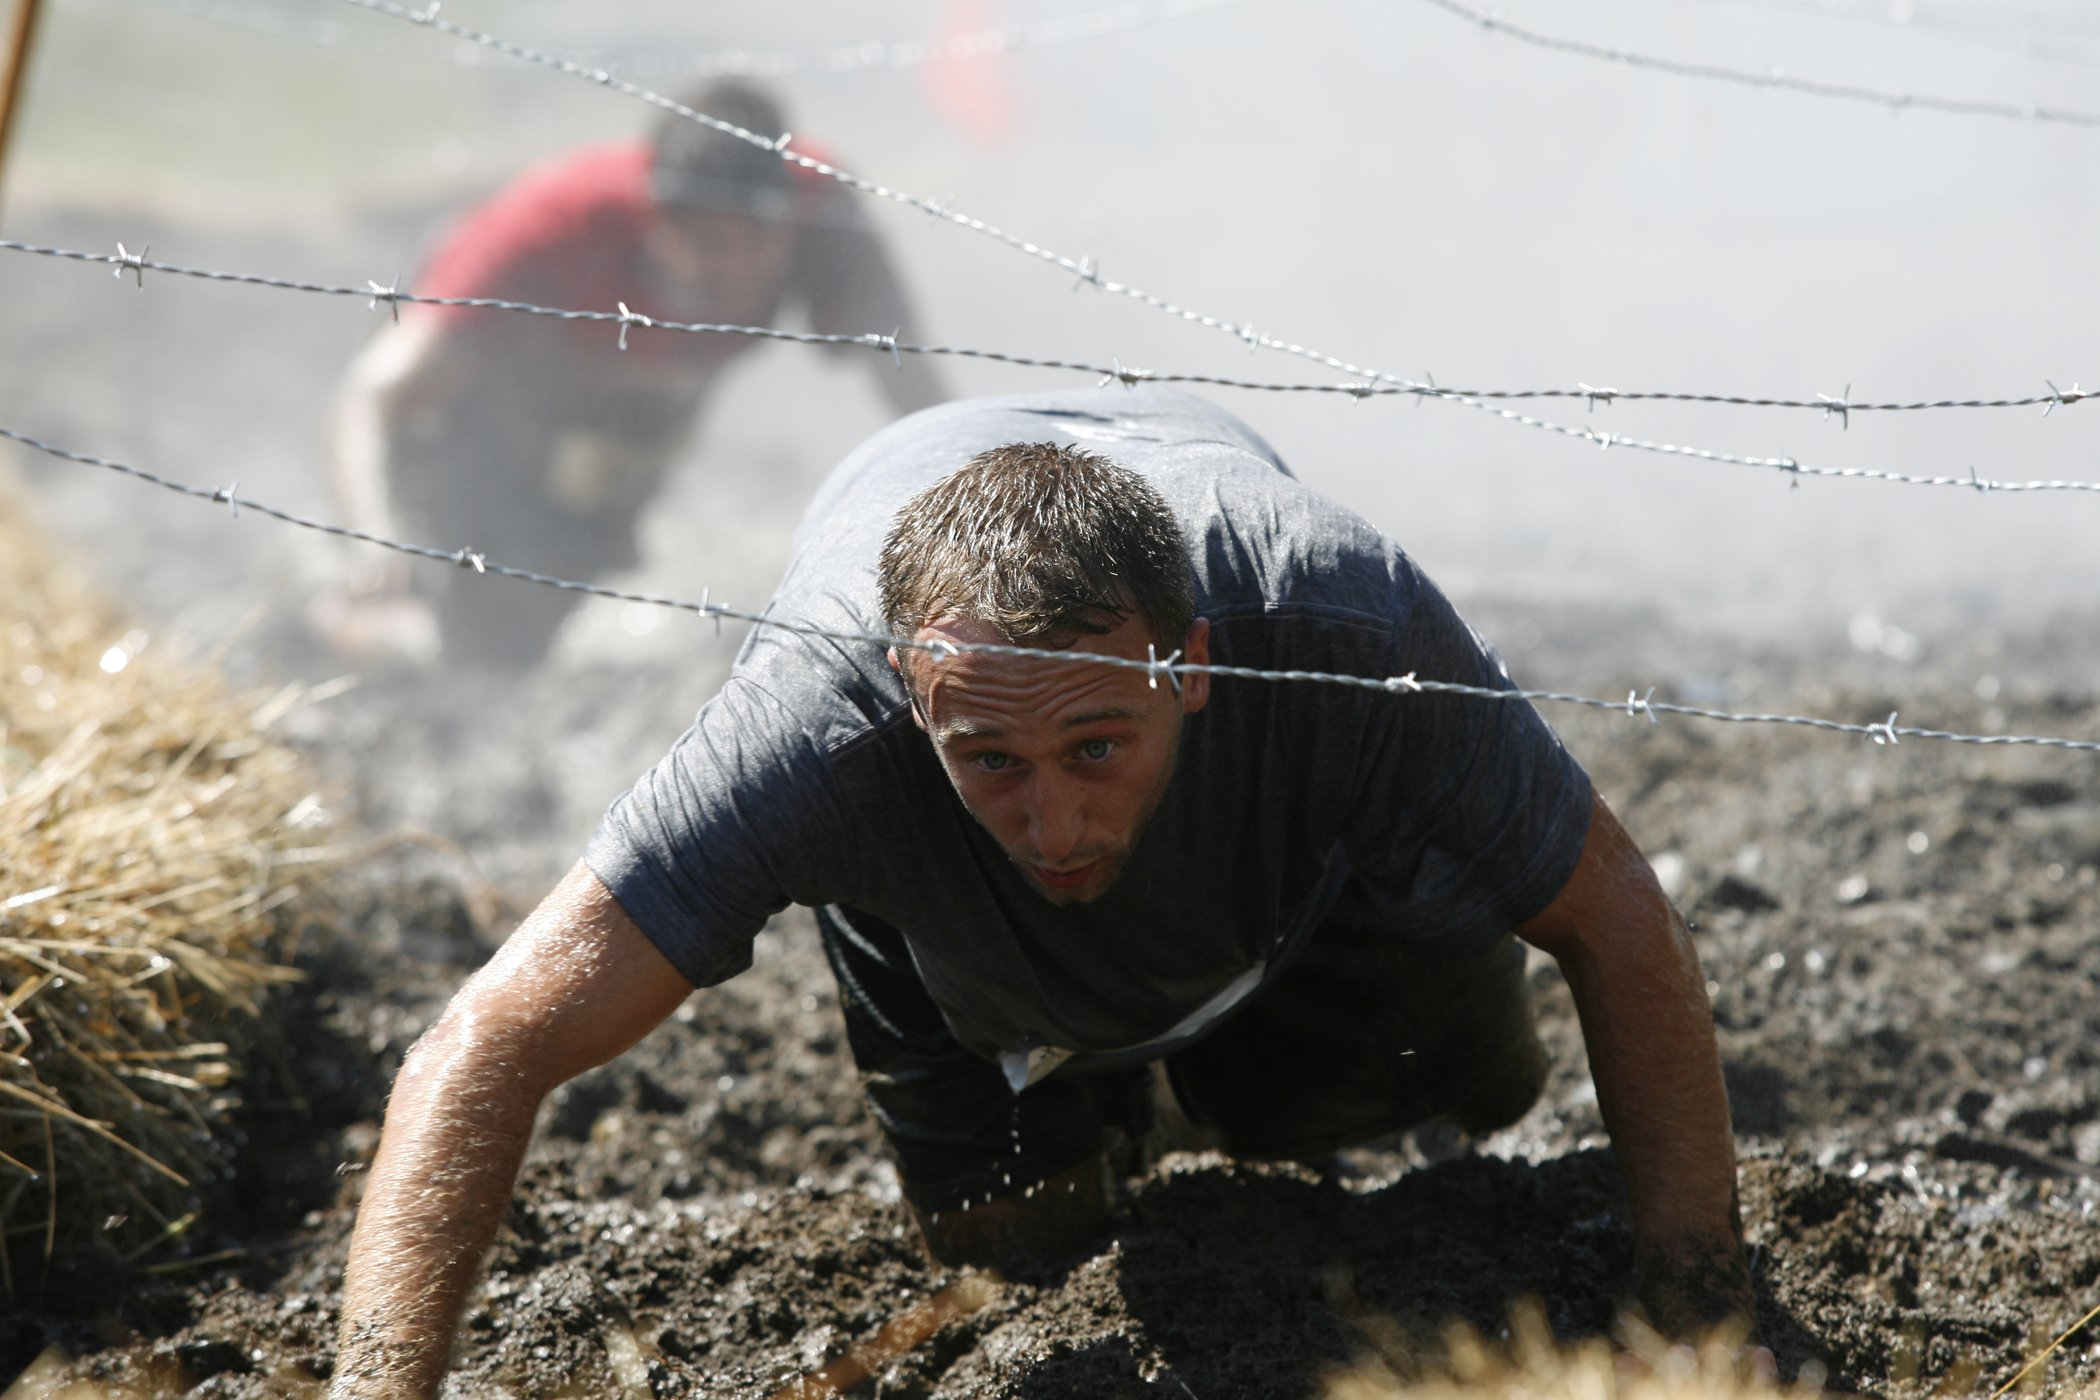 Sunday River Resort is home to the Tough Mountain Challenge: A mud and obstacle race cover 3.2 miles of the resort's most challenging terrain. toughmountain.com for more information.